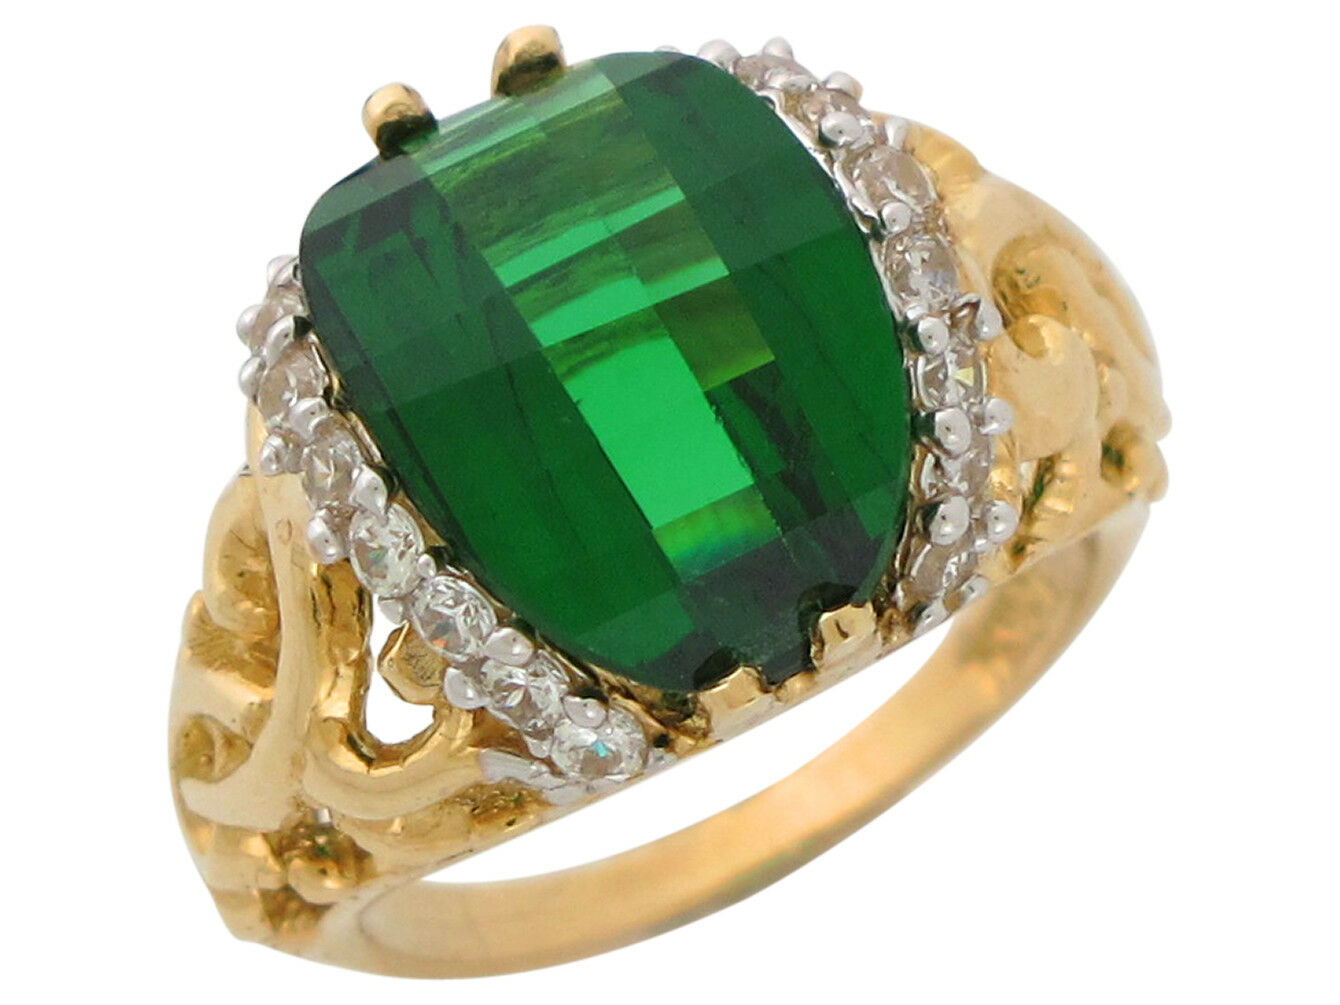 10k or 14k gold Simulated Emerald and White CZ Ladies Vine May Birthstone Ring